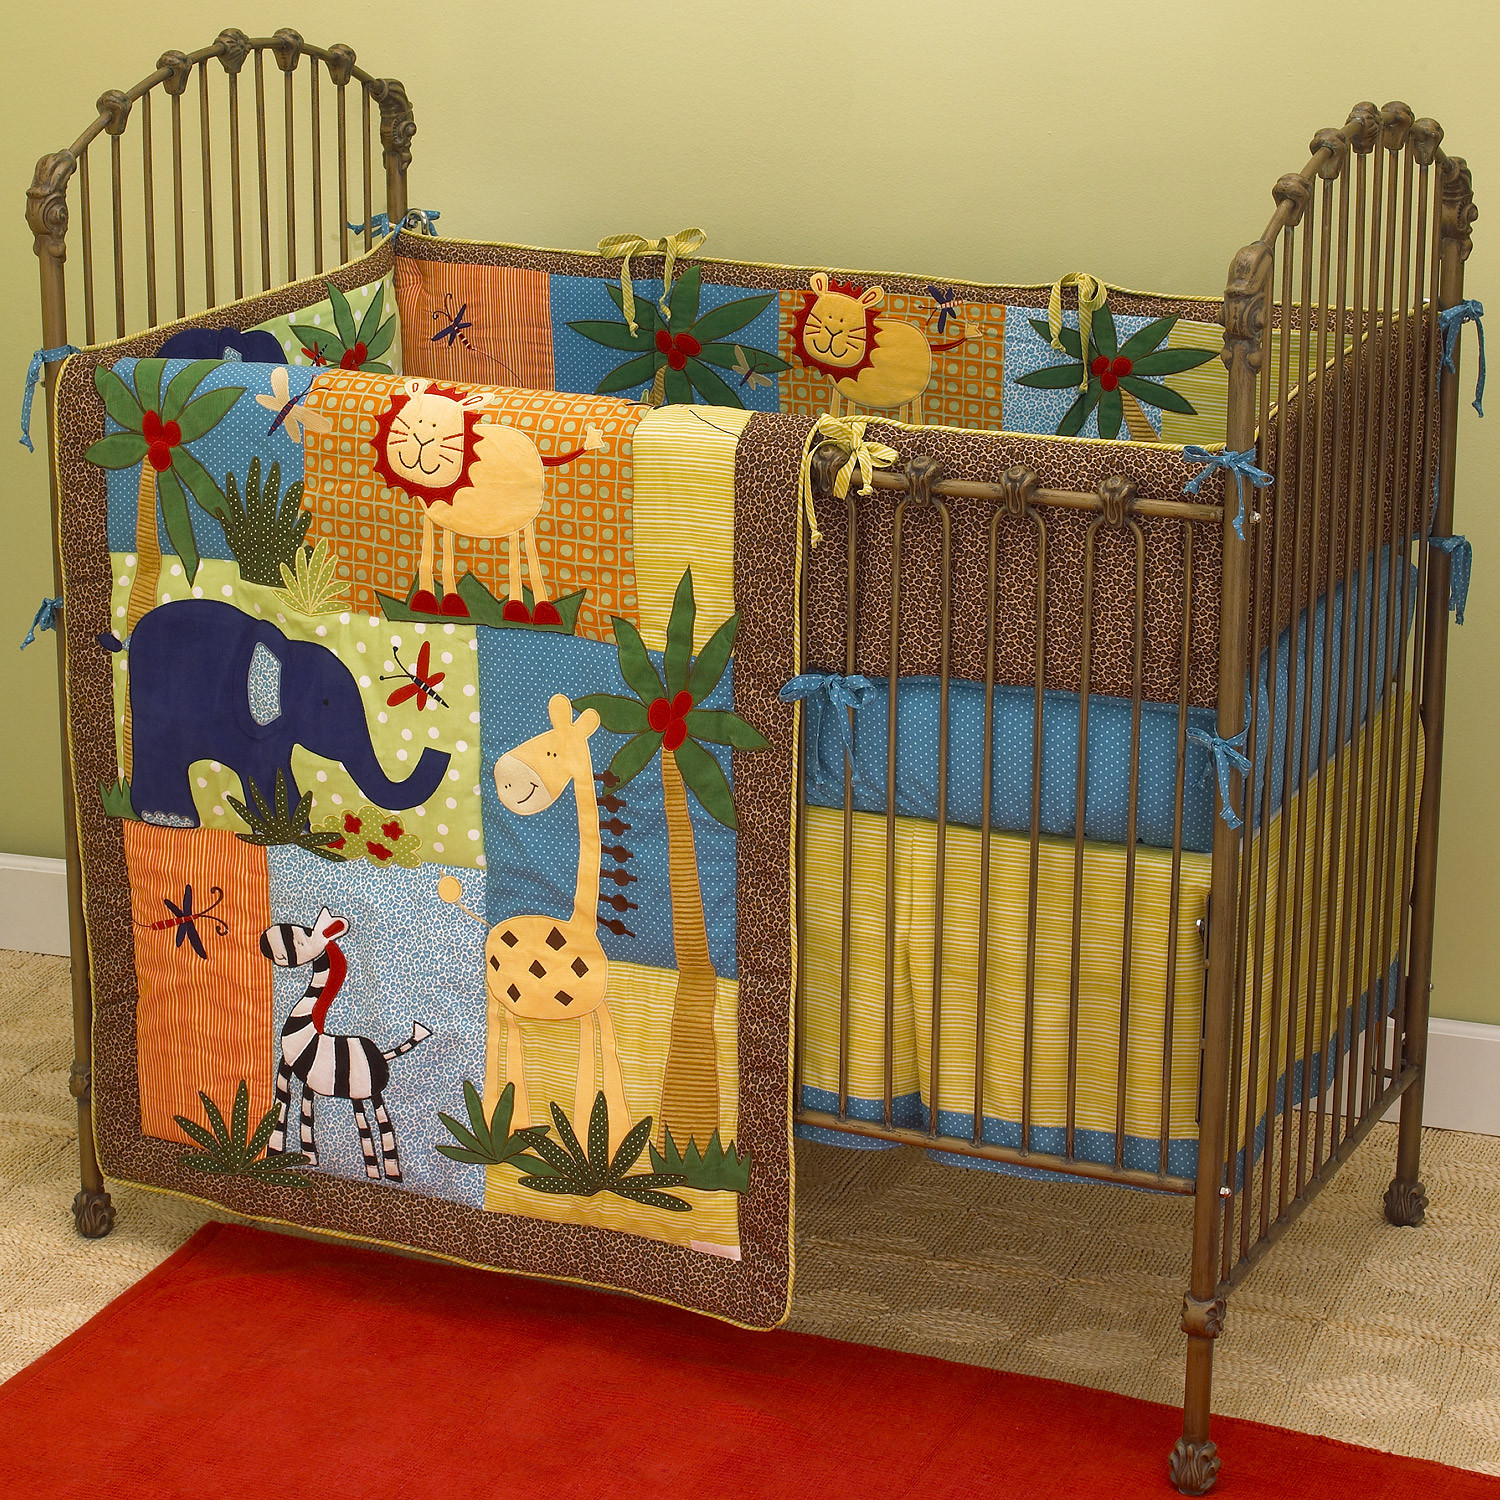 Jungle Baby Room Decor  Baby Room Decorating Ideas for Boys and Girls Sharing A